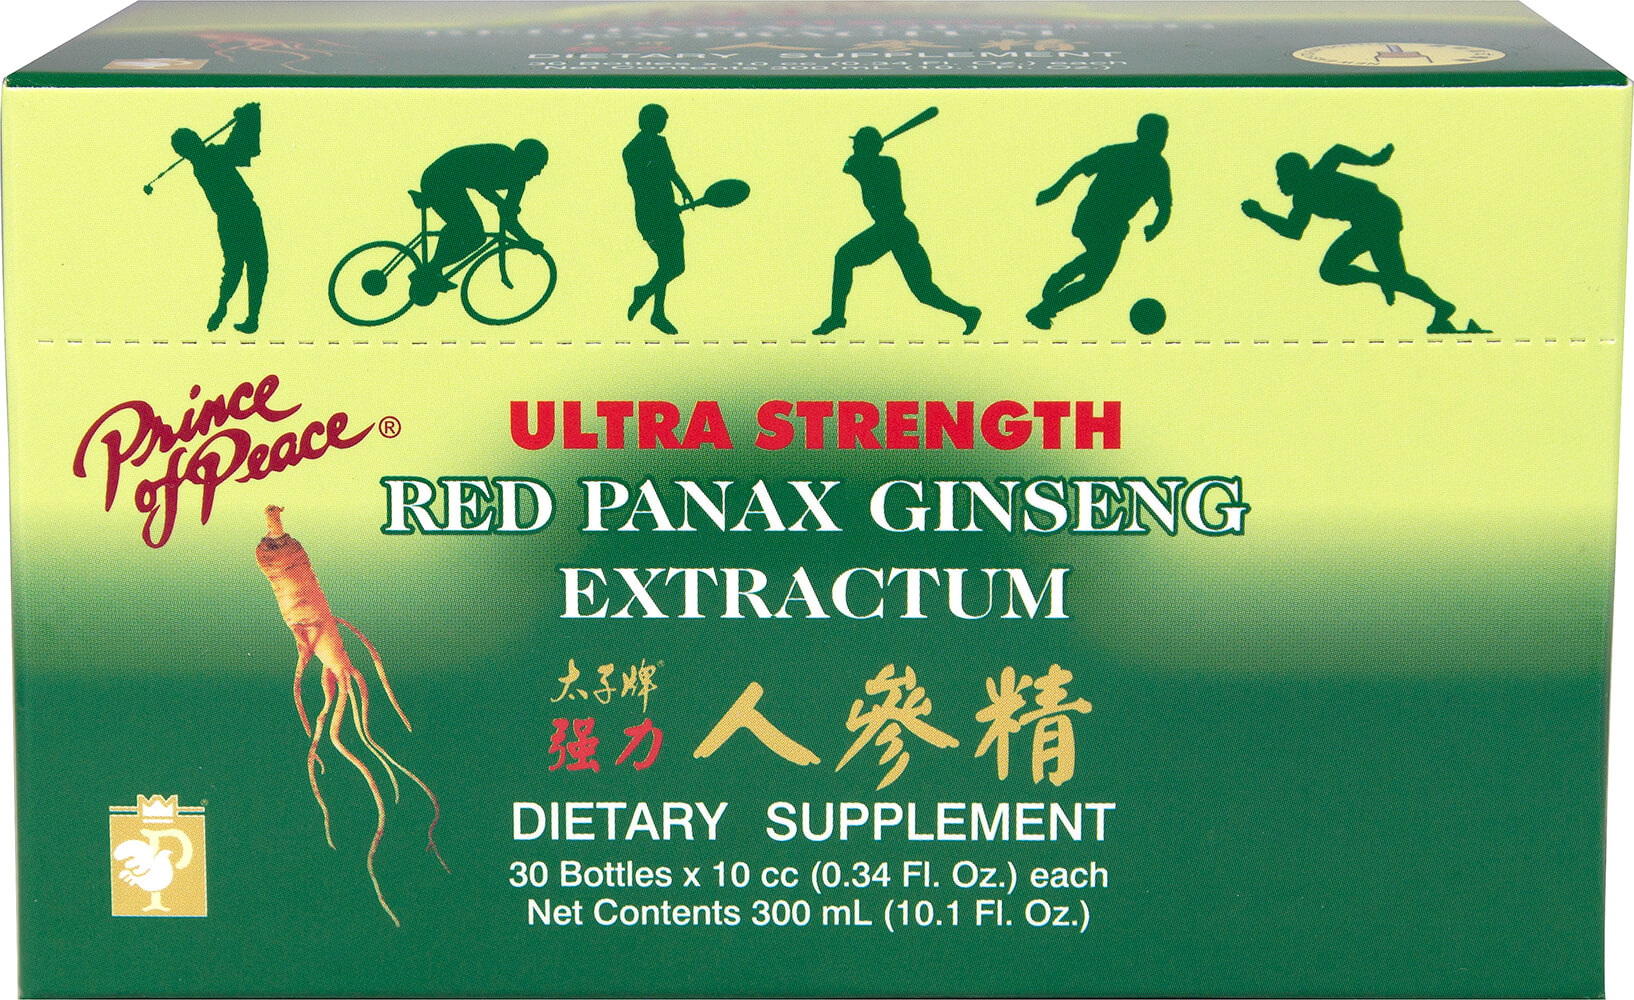 Red Panax Ginseng Extractum Thumbnail Alternate Bottle View